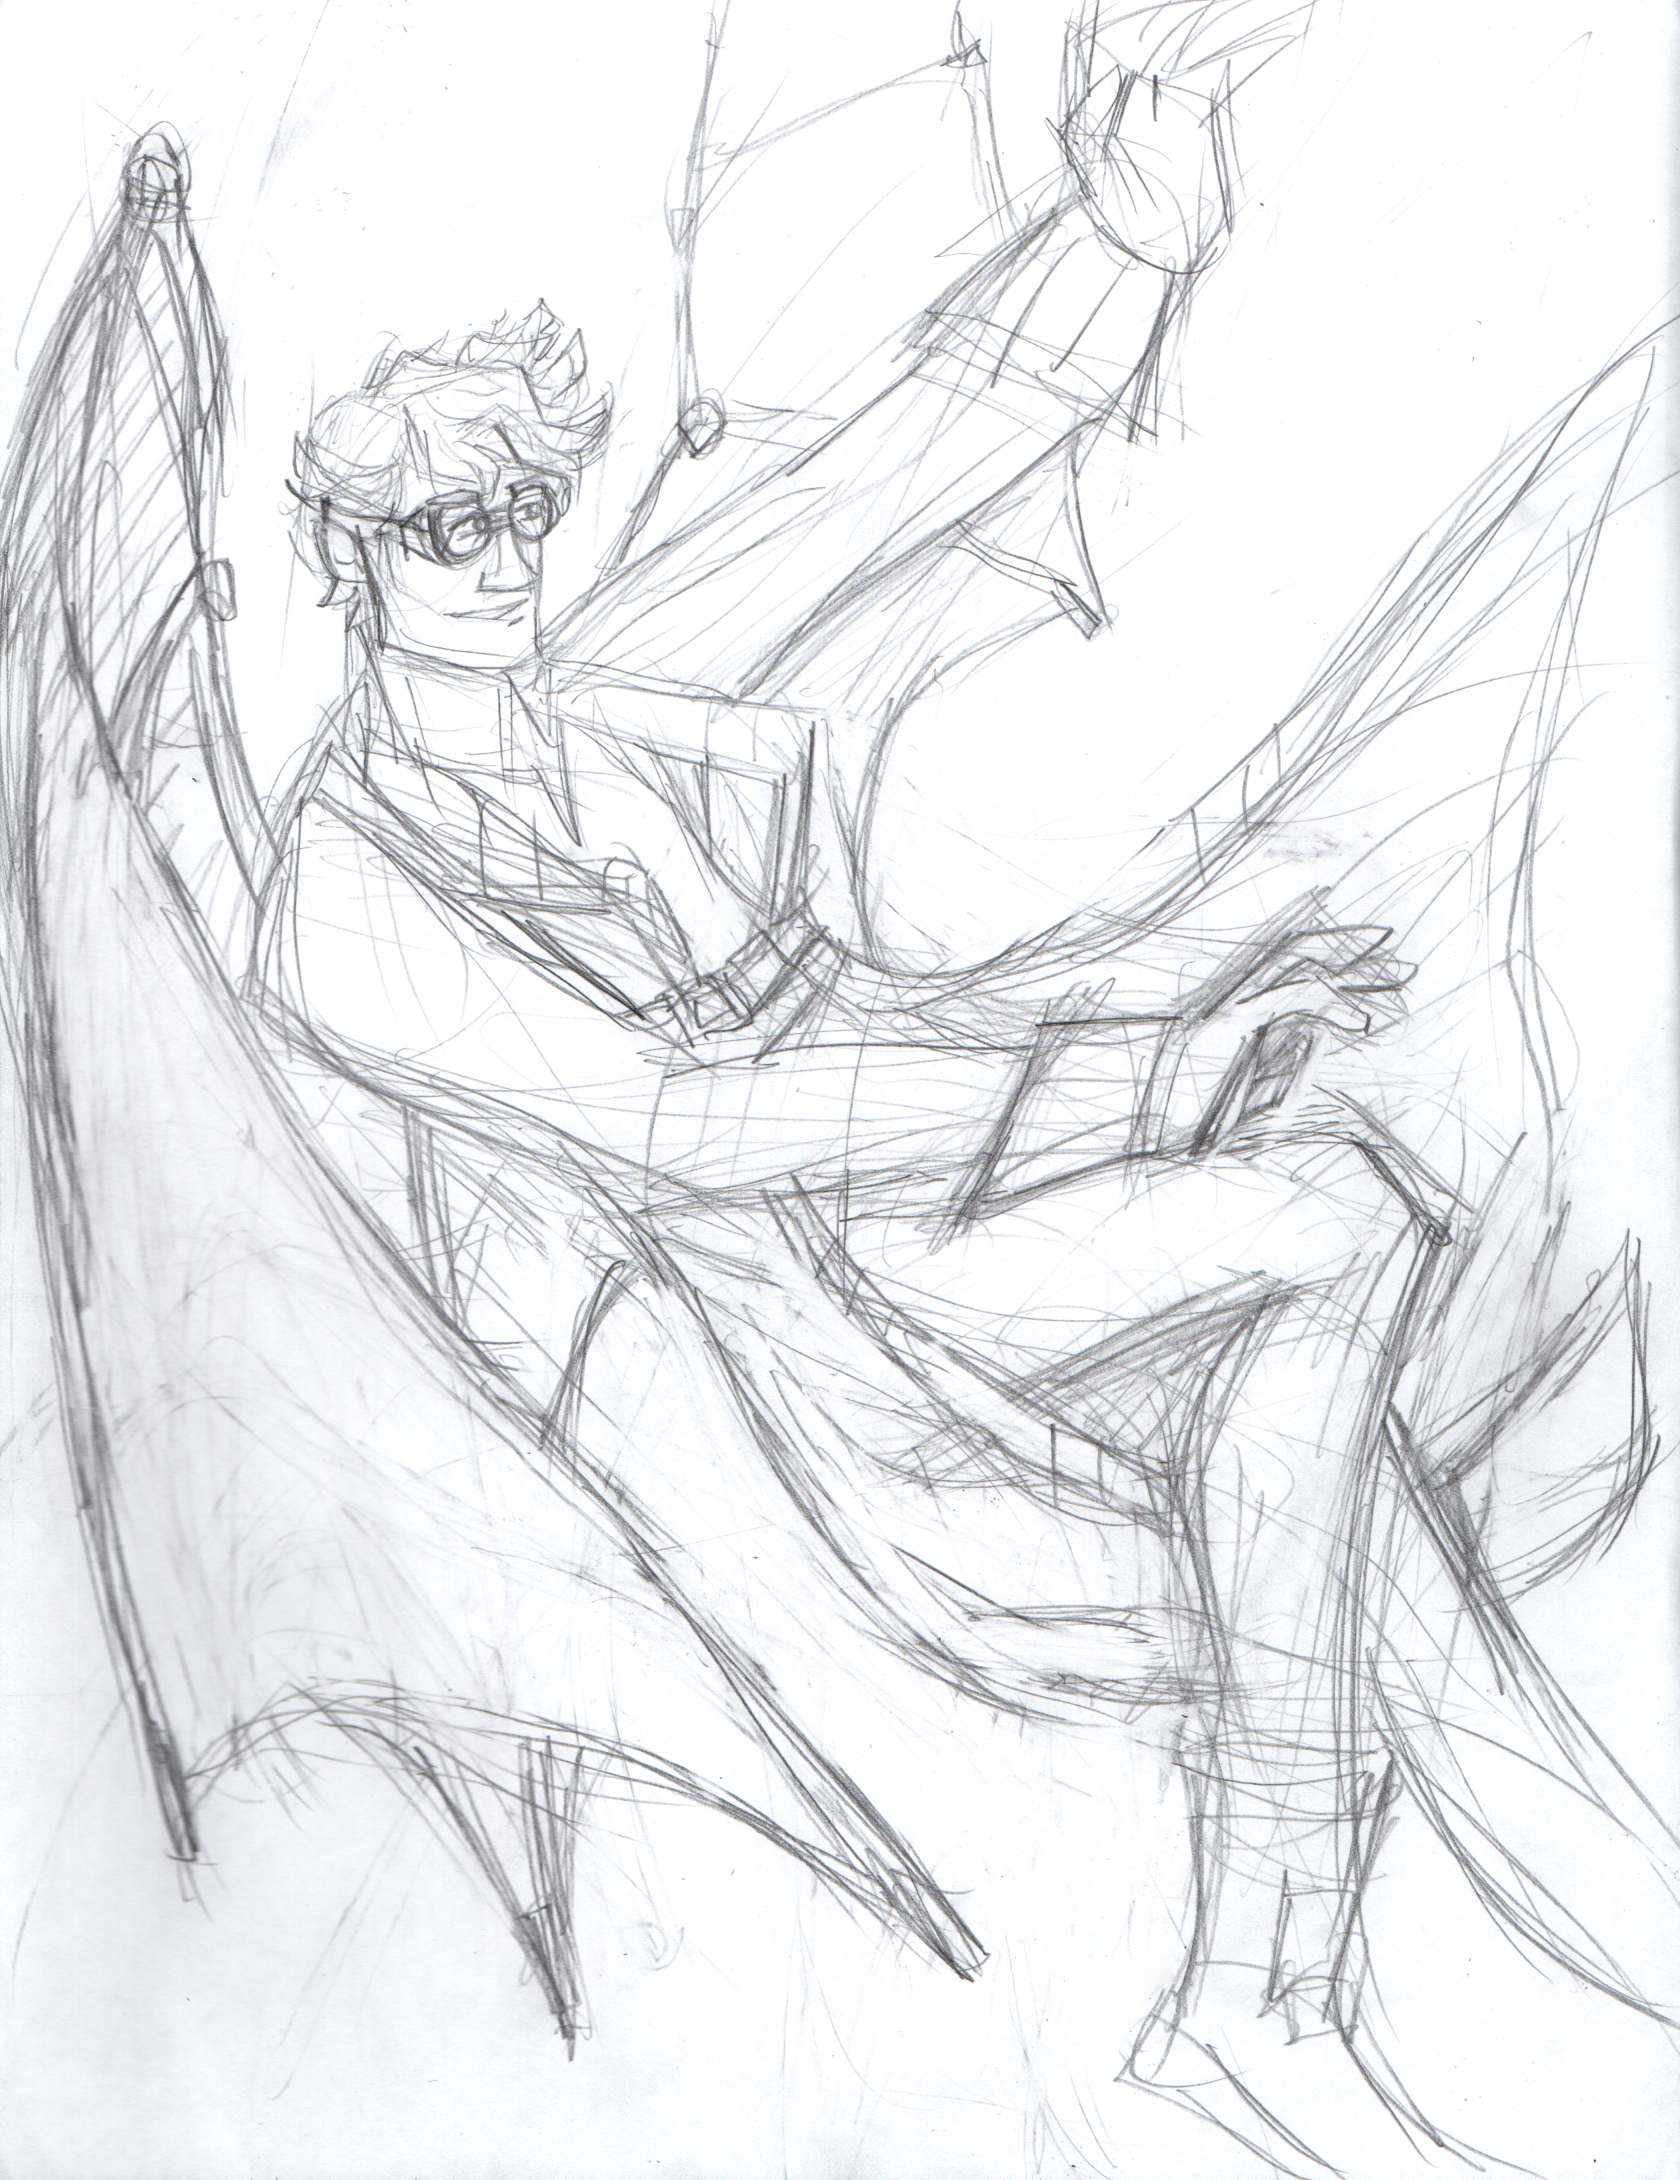 thym_flight_sketch.png